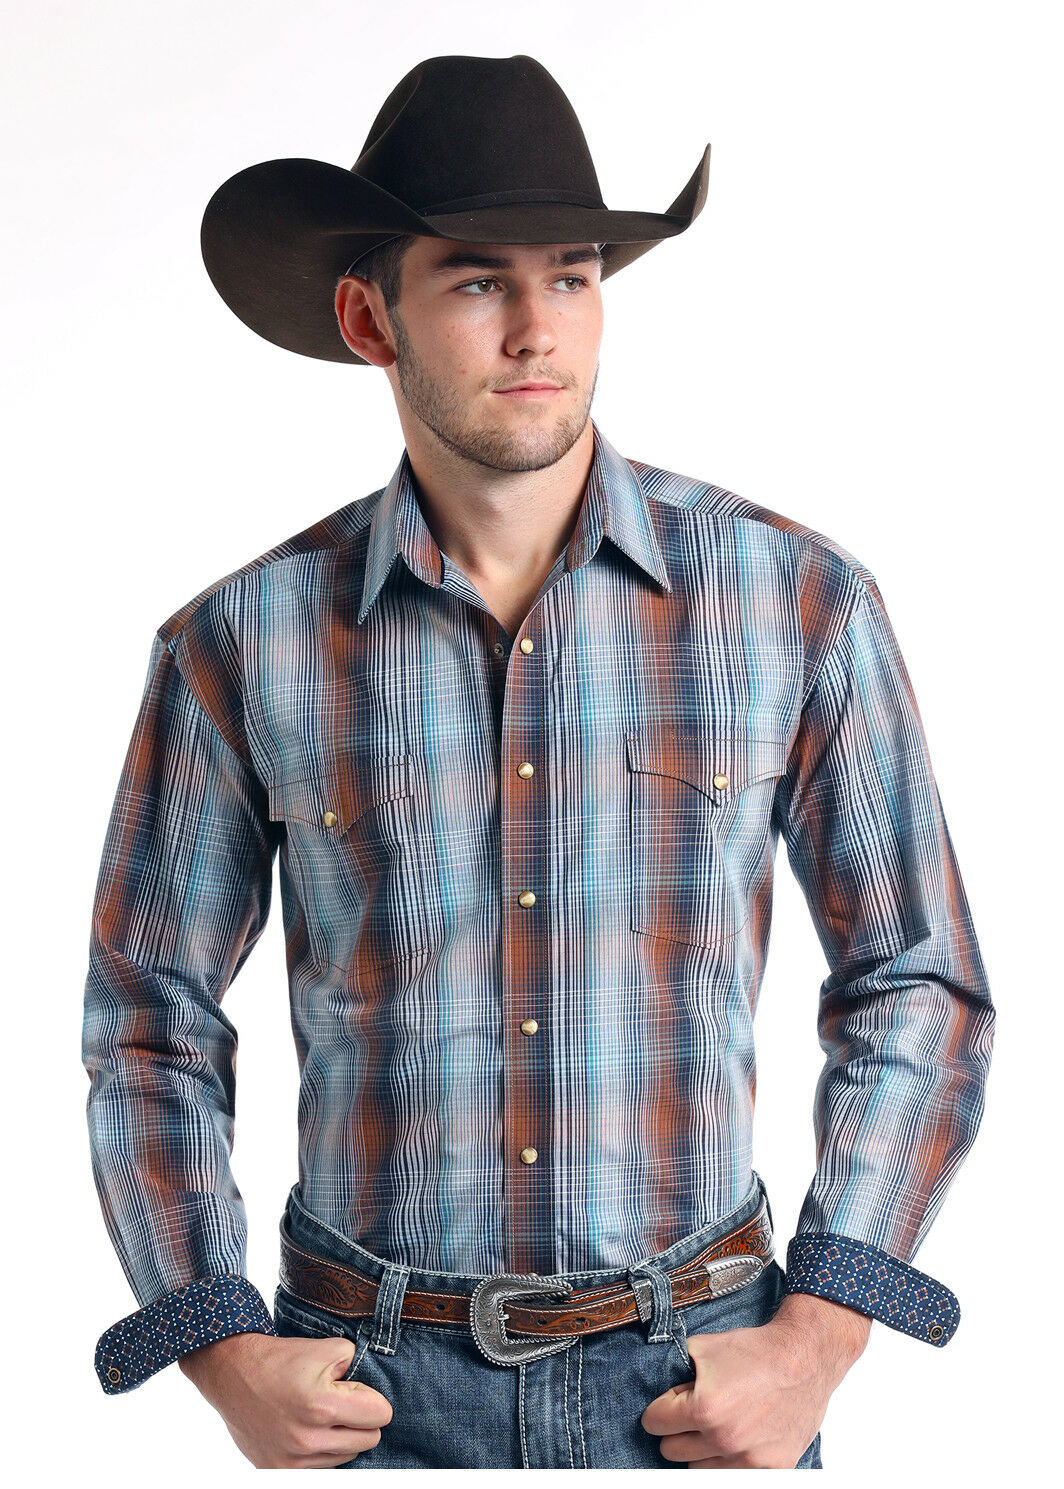 Panhandle Slim Men's bluee & Brown Ombre Plaid Snap Up Western Shirt R0S7583